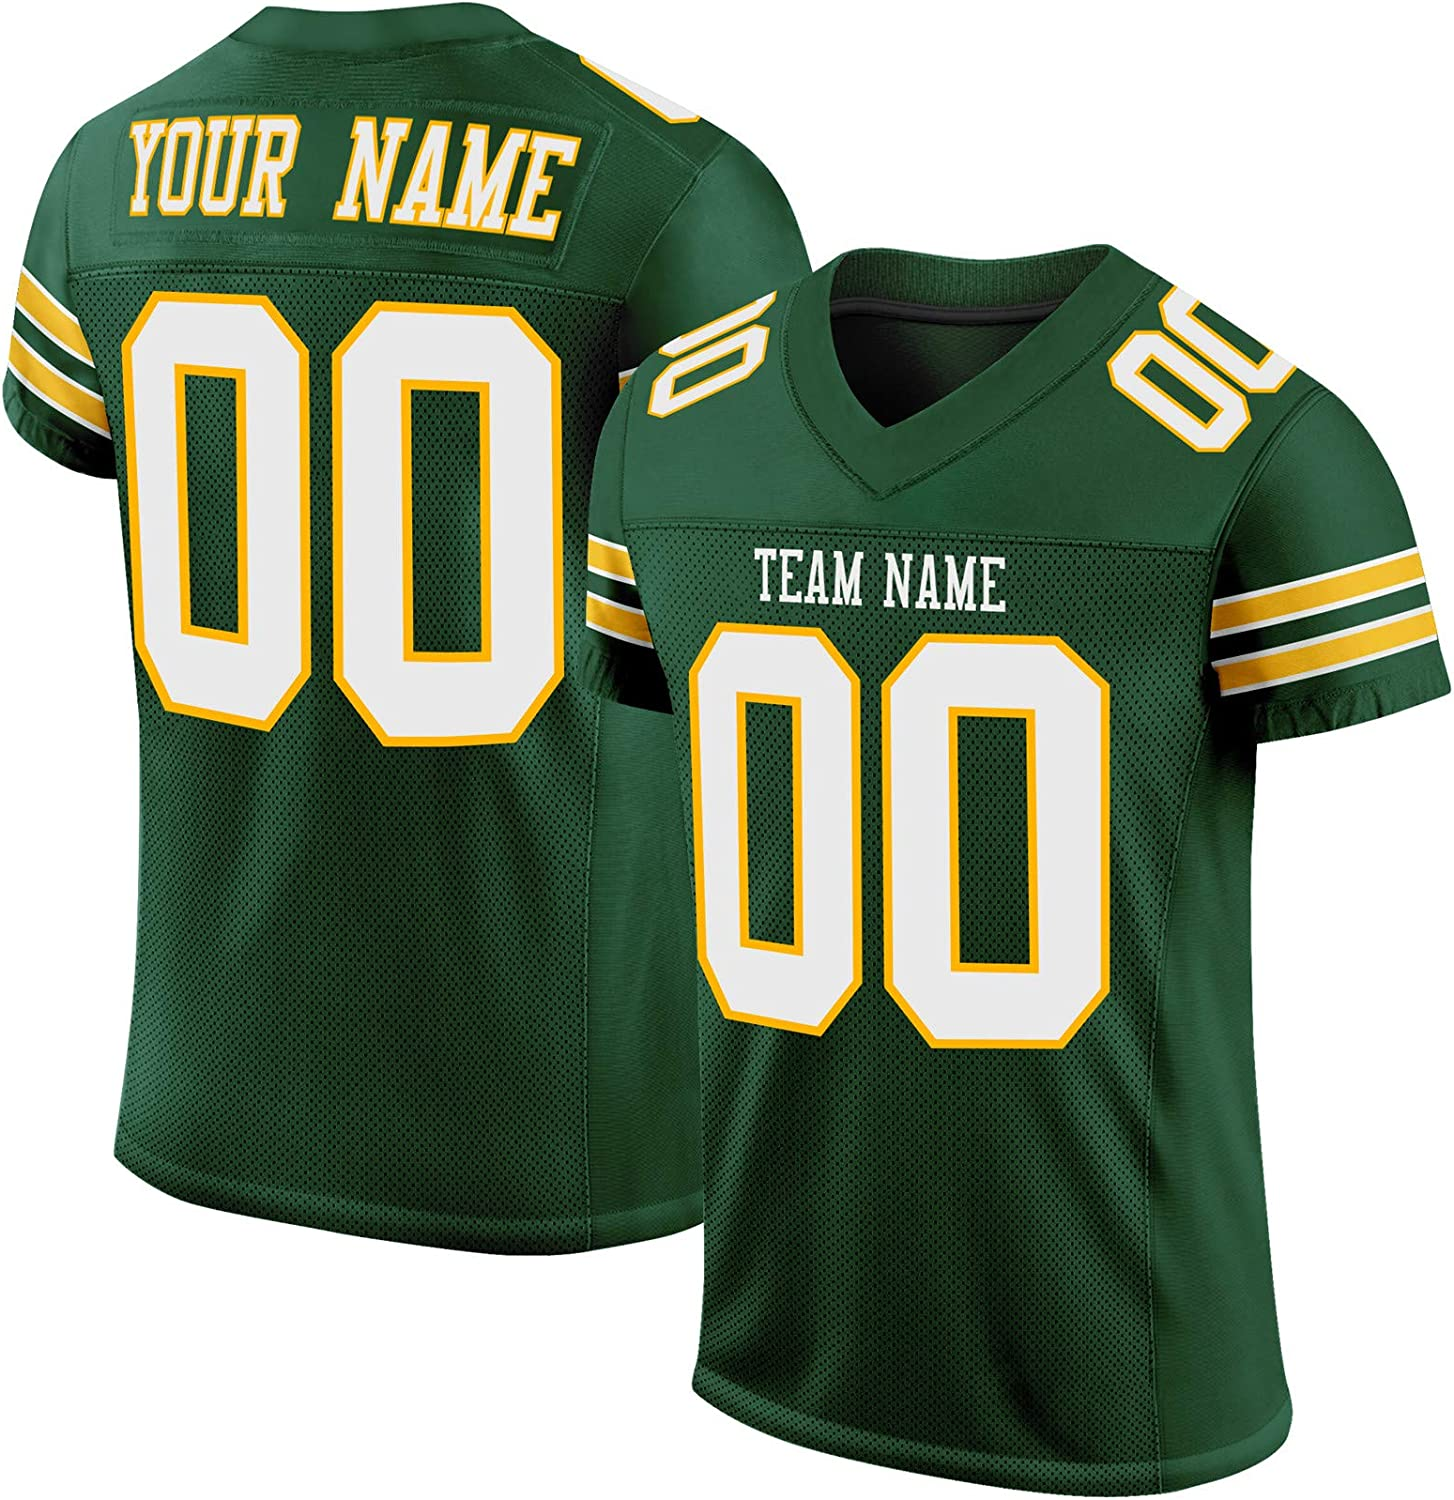 Custom Stitched Football Jerseys for Men/Women/Youth,Personalized Sports Uniform with Team Name and Number